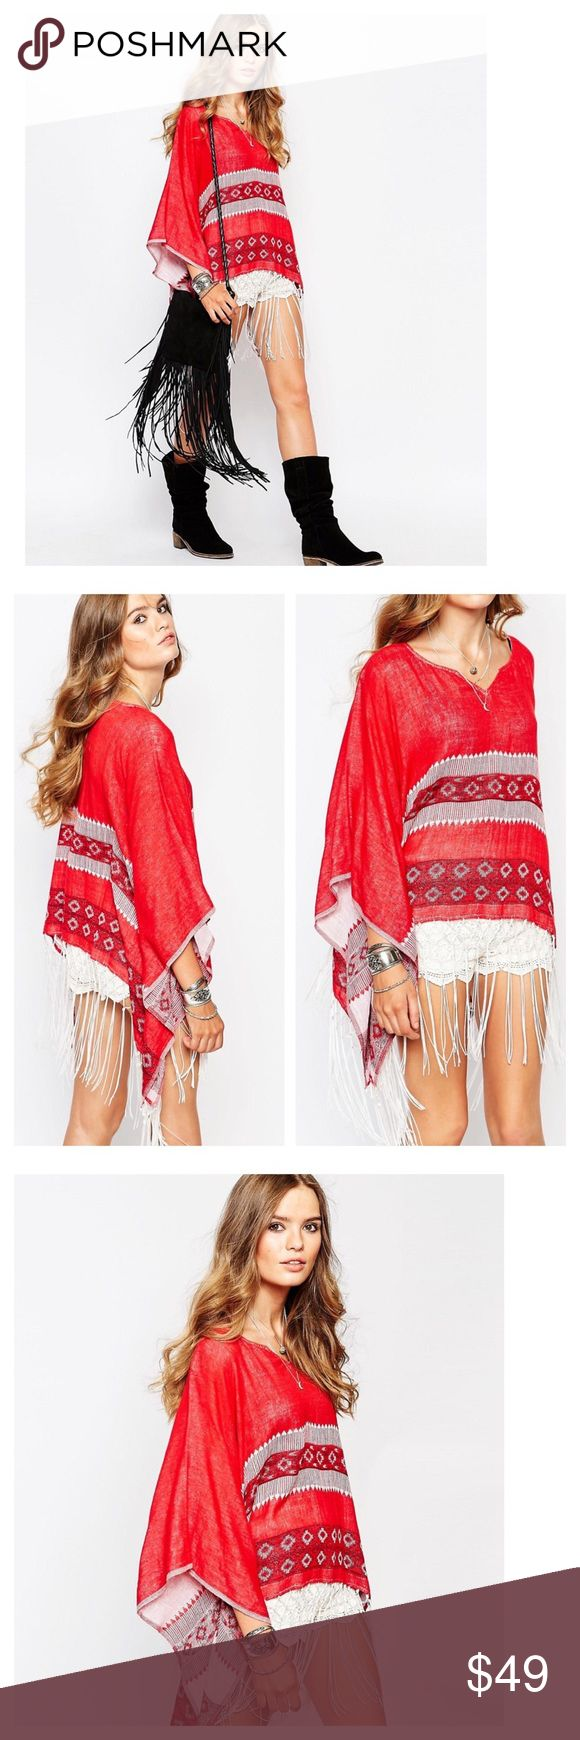 "Hippie festival poncho From the brand Spiritual Hippie sold by ASOS. Poncho features southwestern print with fringe trim. Fits sizes 6 to 10. Length without fringe 22"". 100% cotton. New in bag. no trades ASOS Sweaters Shrugs & Ponchos"